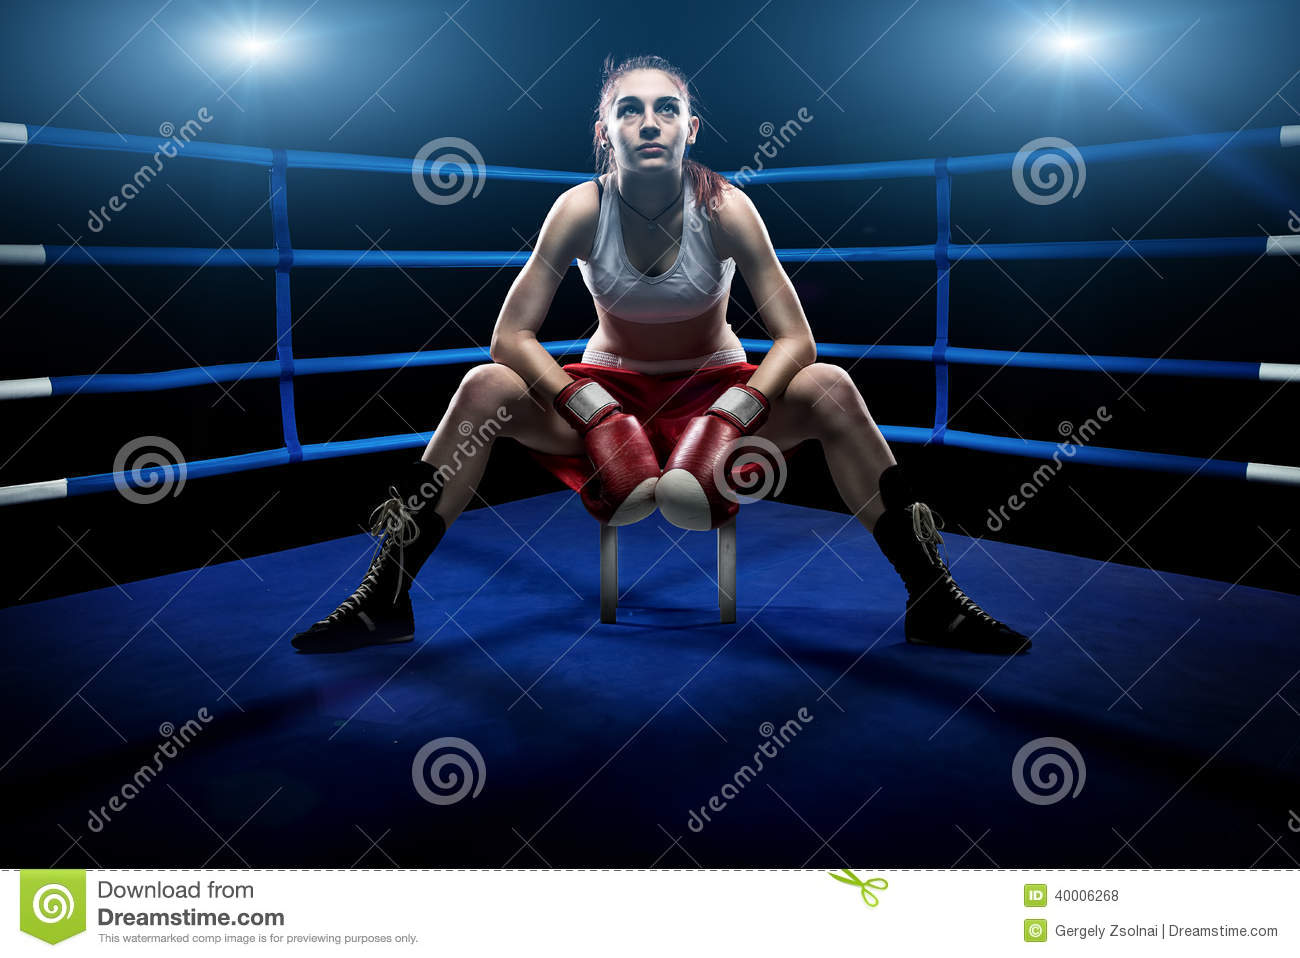 Boxing woman sitting alone in the boxing arena , surrounded by blue lights